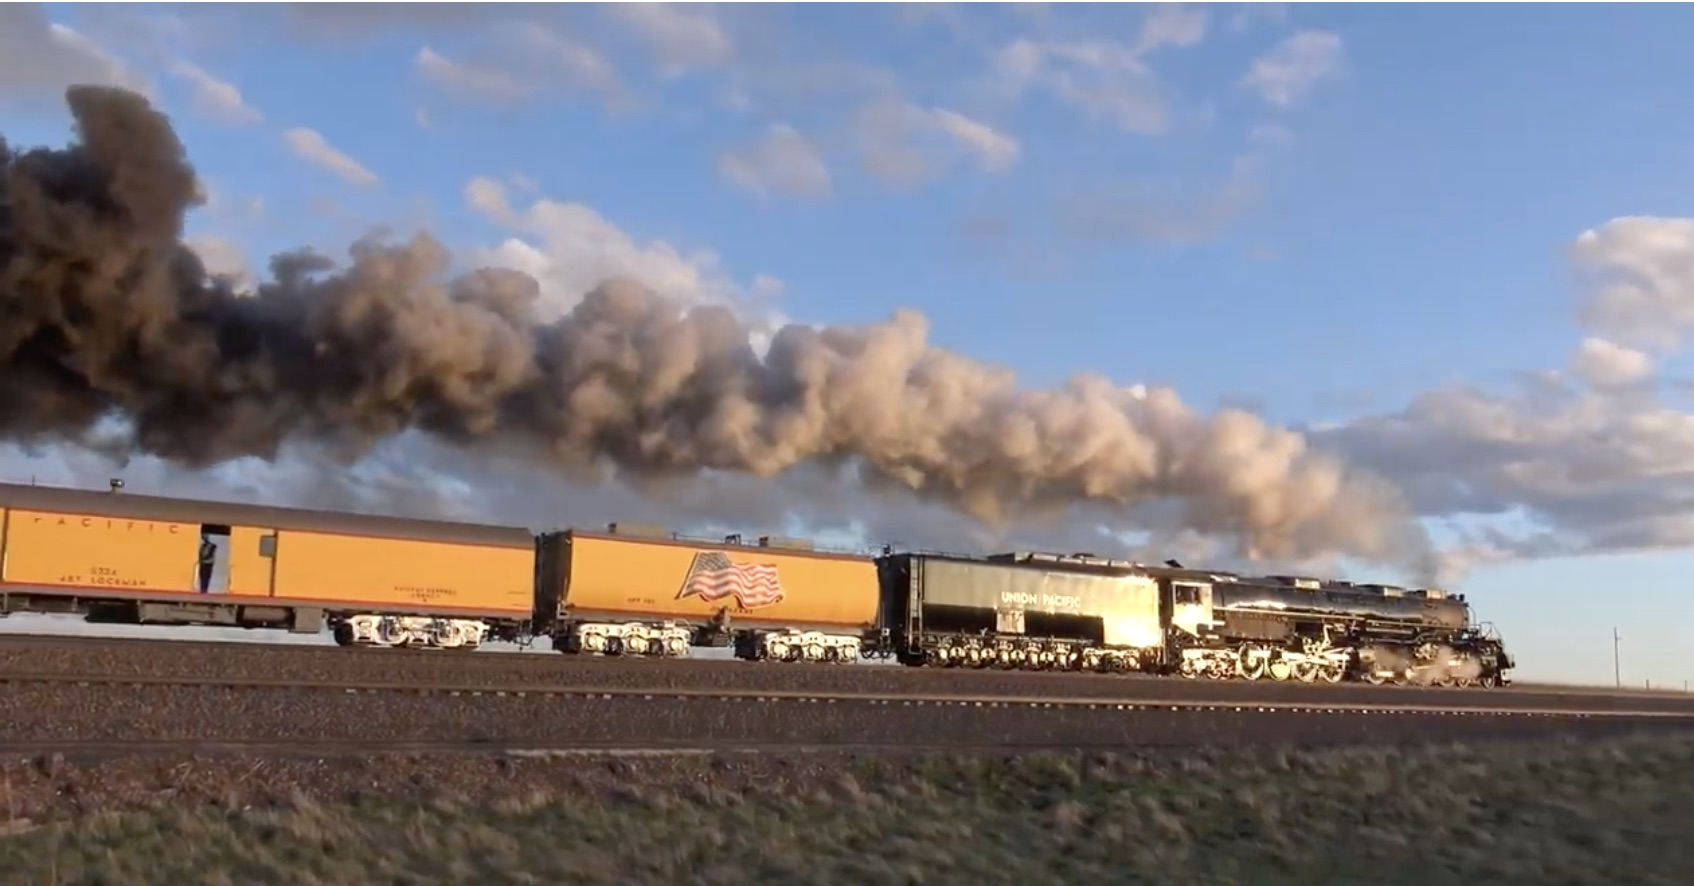 Morning Symphony: The Union Pacific #4014 Big Boy and #844 Steam Locomotives In Action